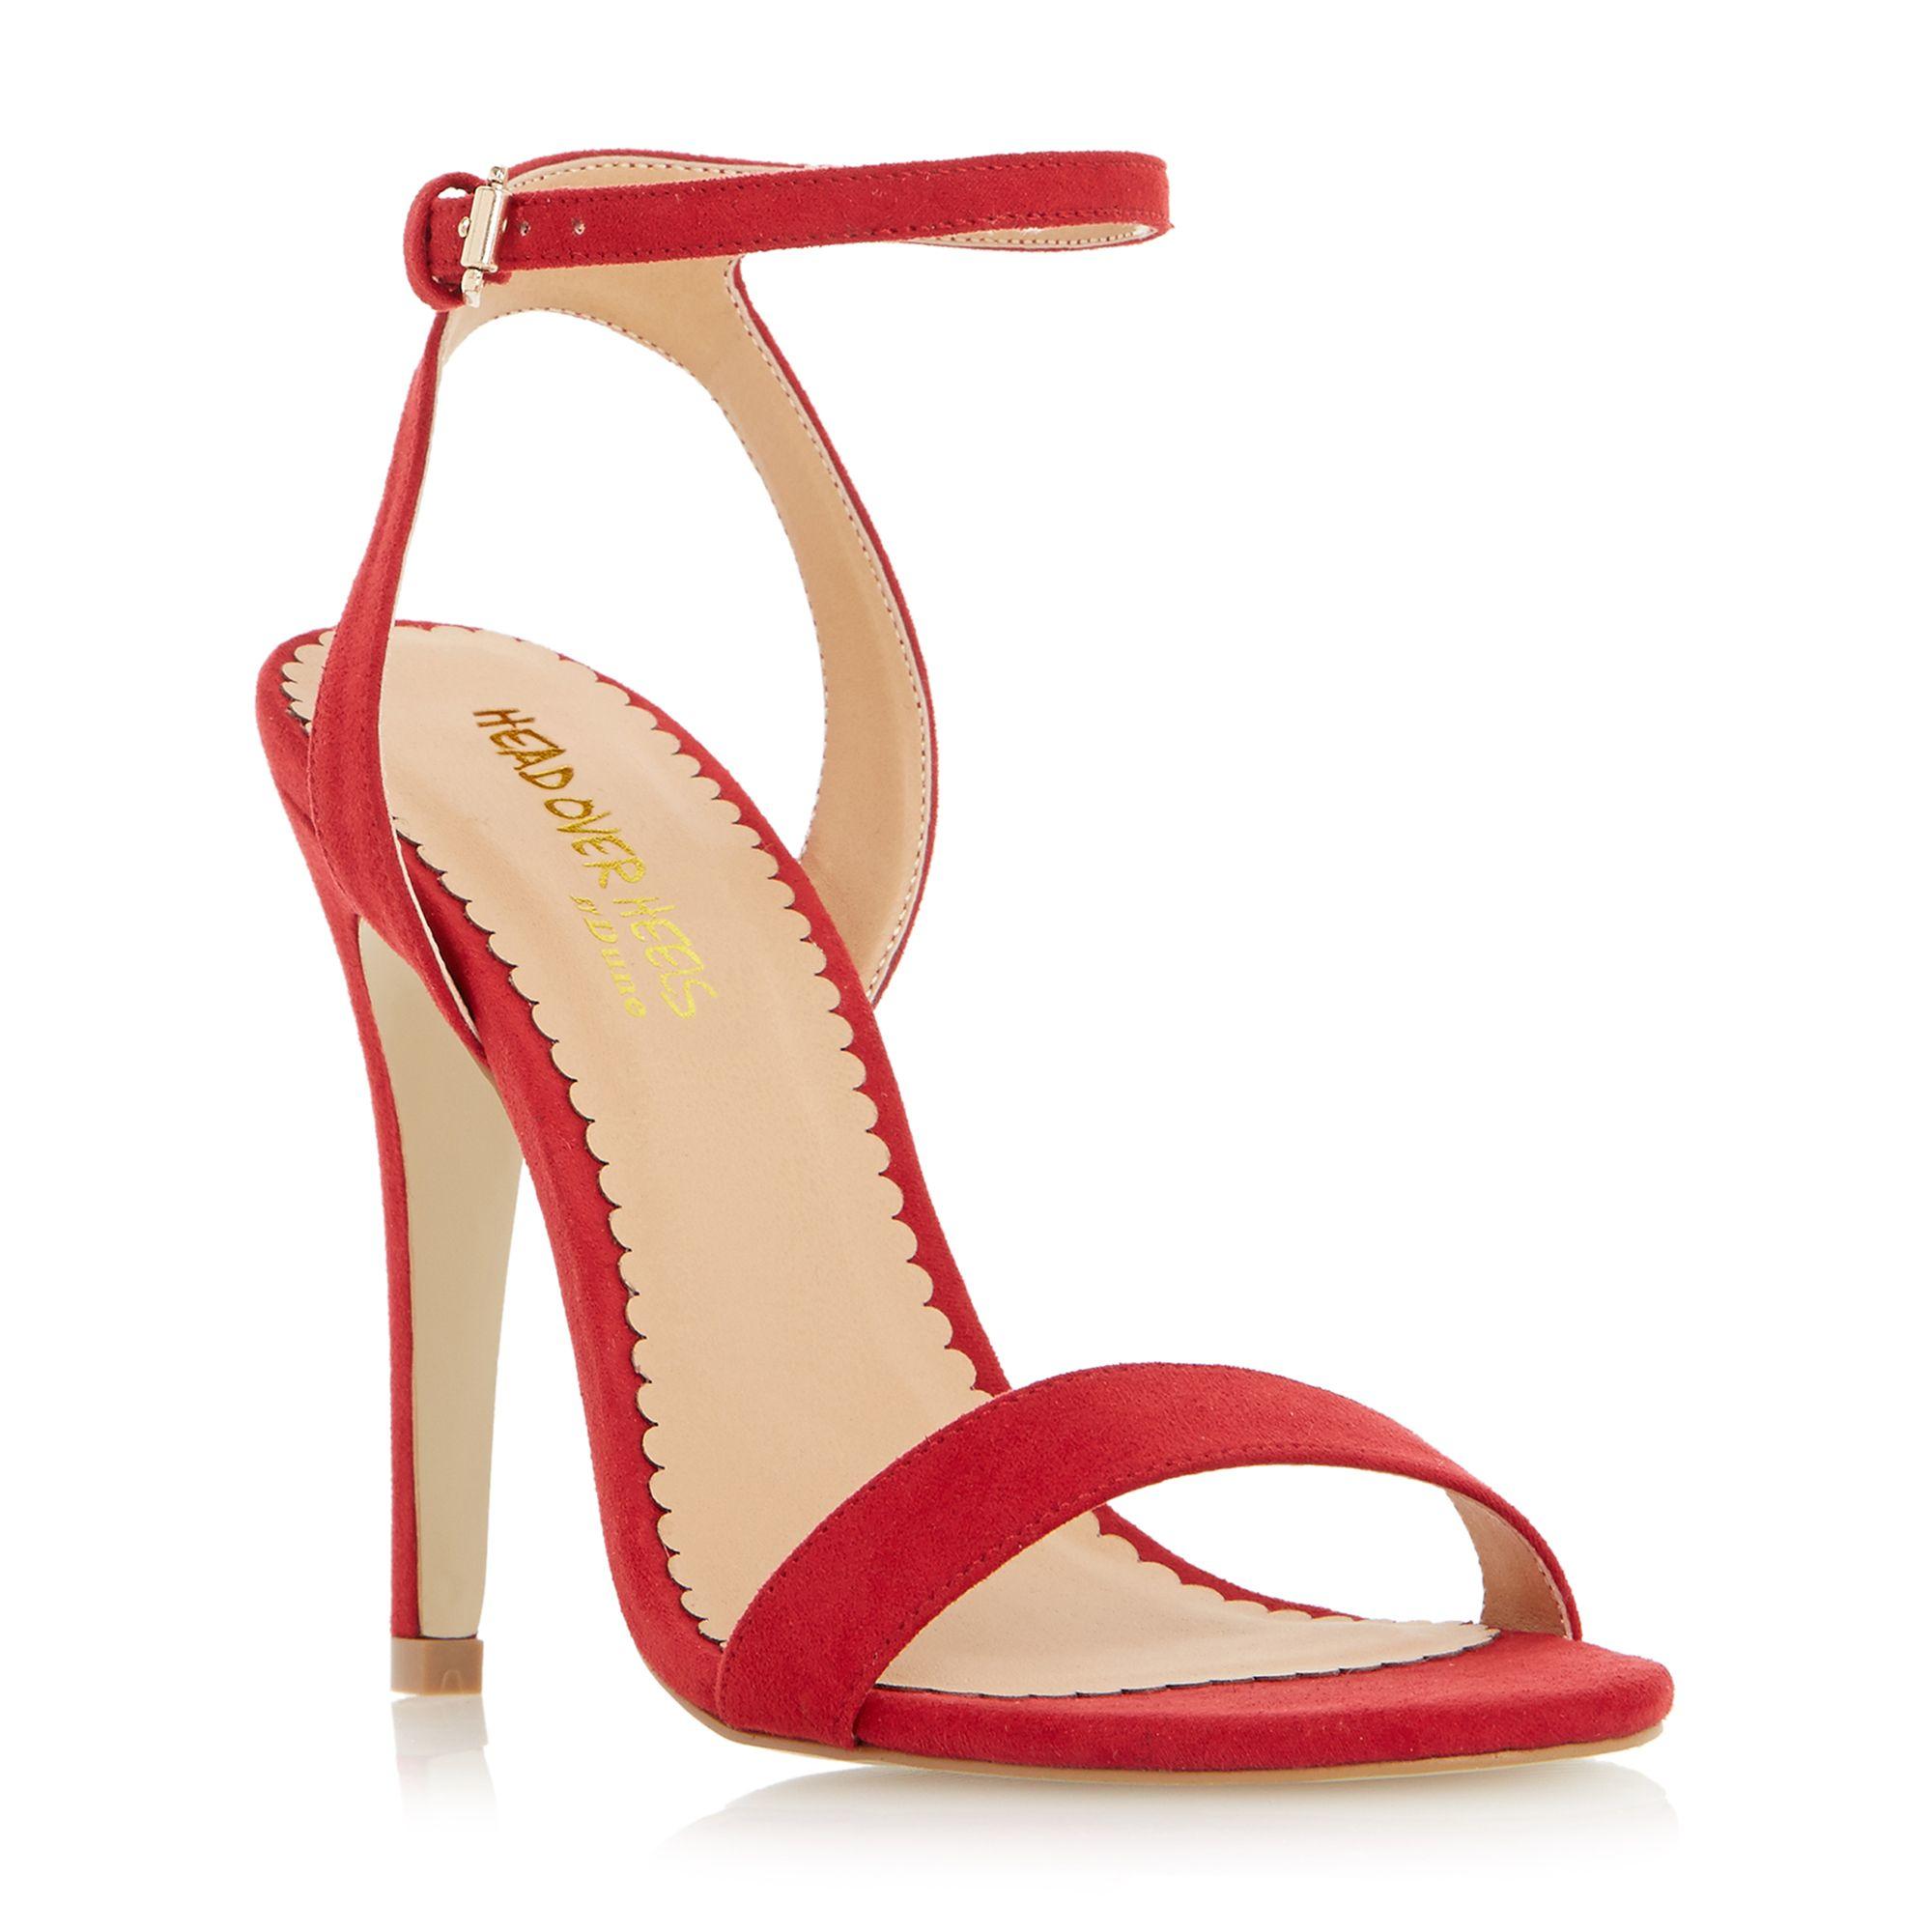 Dune Madam Two Part High Heel Strappy Sandals in Red | Lyst